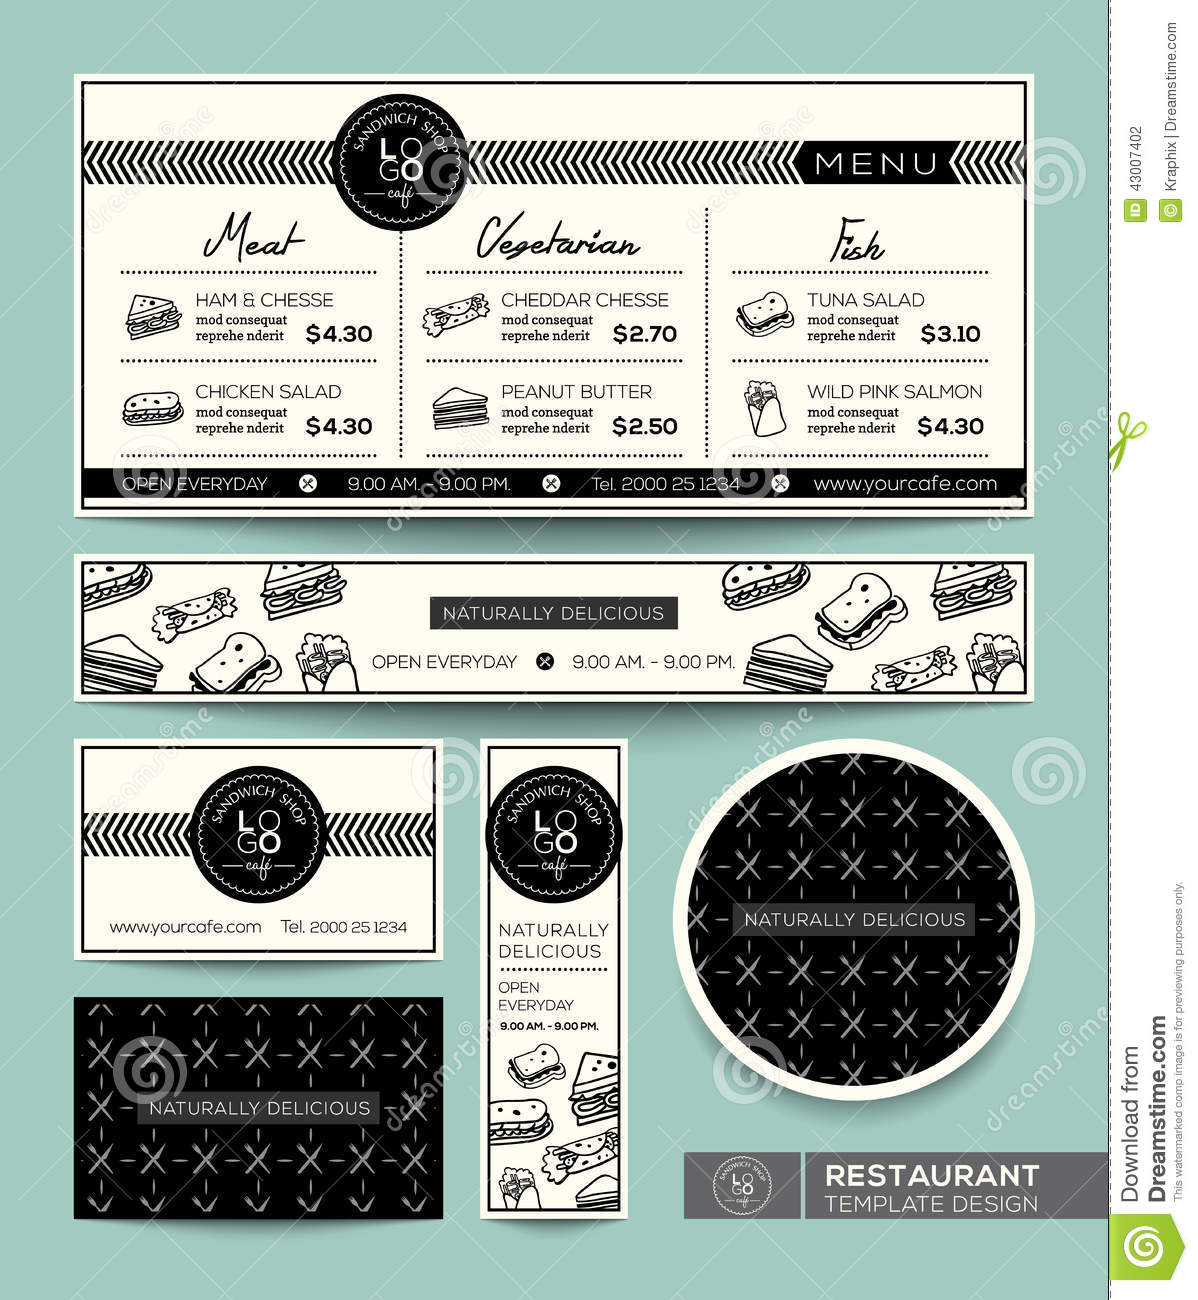 Sandwich set menu restaurant graphic design template stock for Sandwich shop menu template